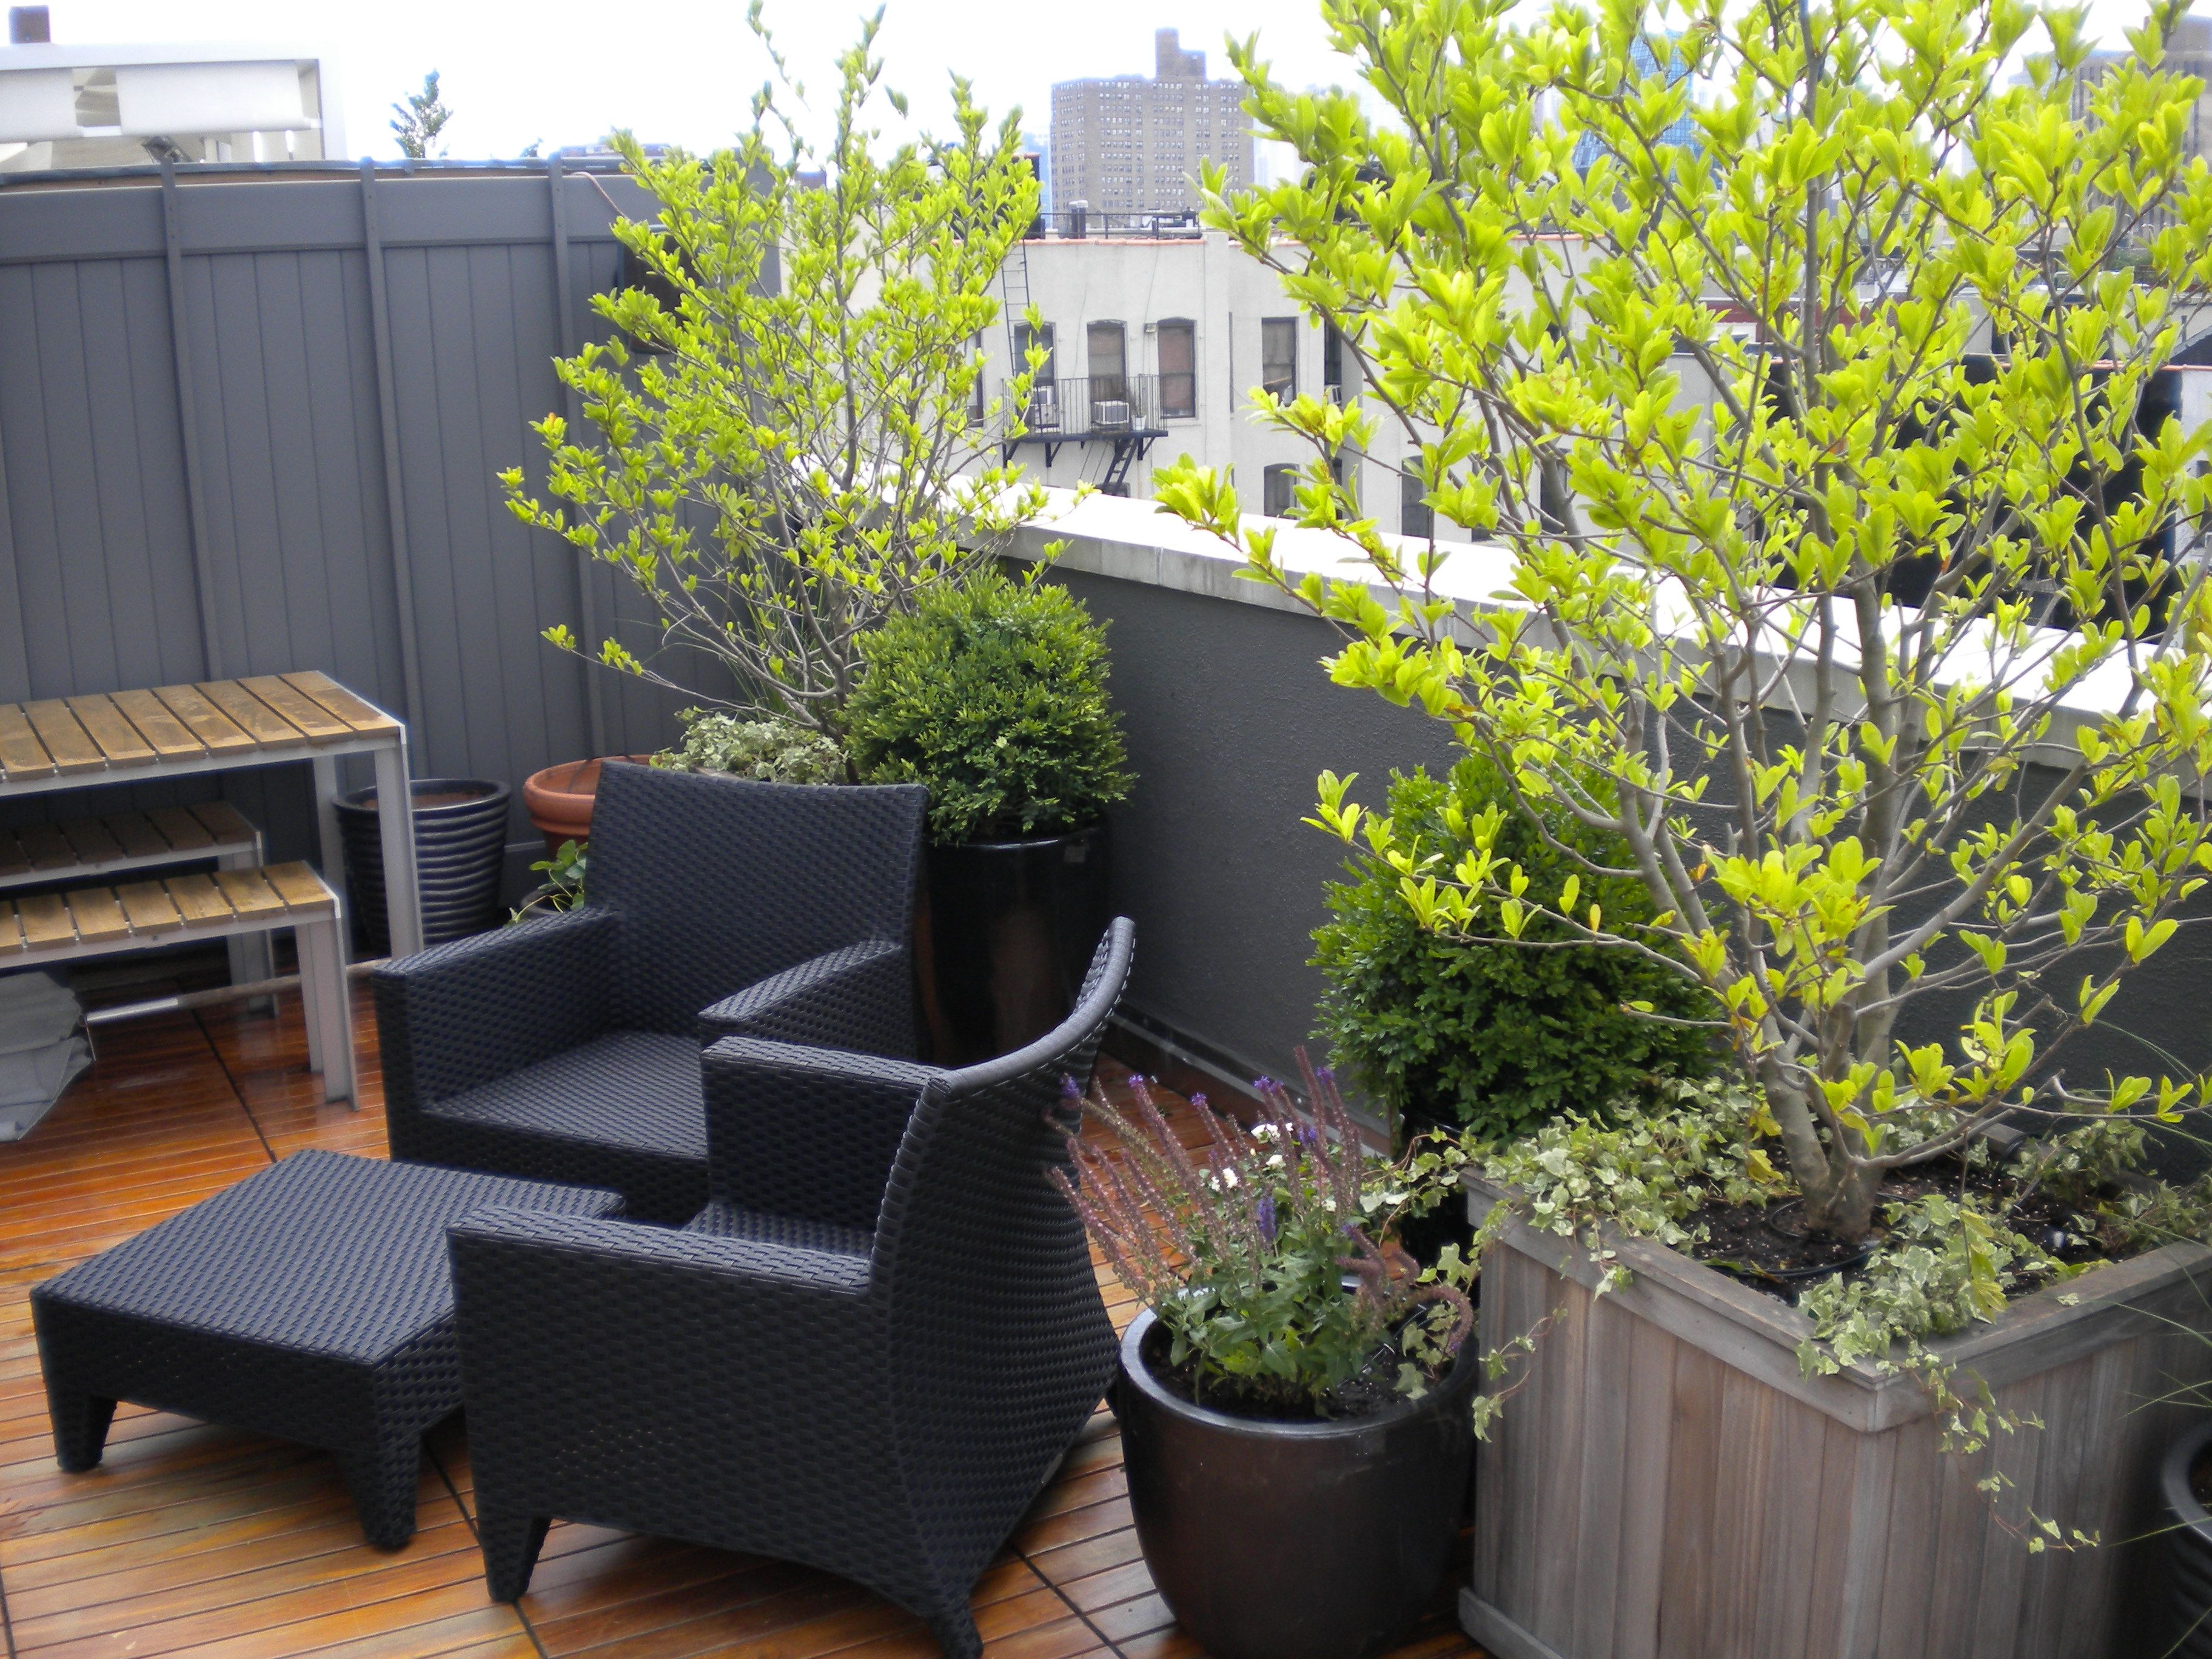 lots of potted plants | styling my home | pinterest | rooftop